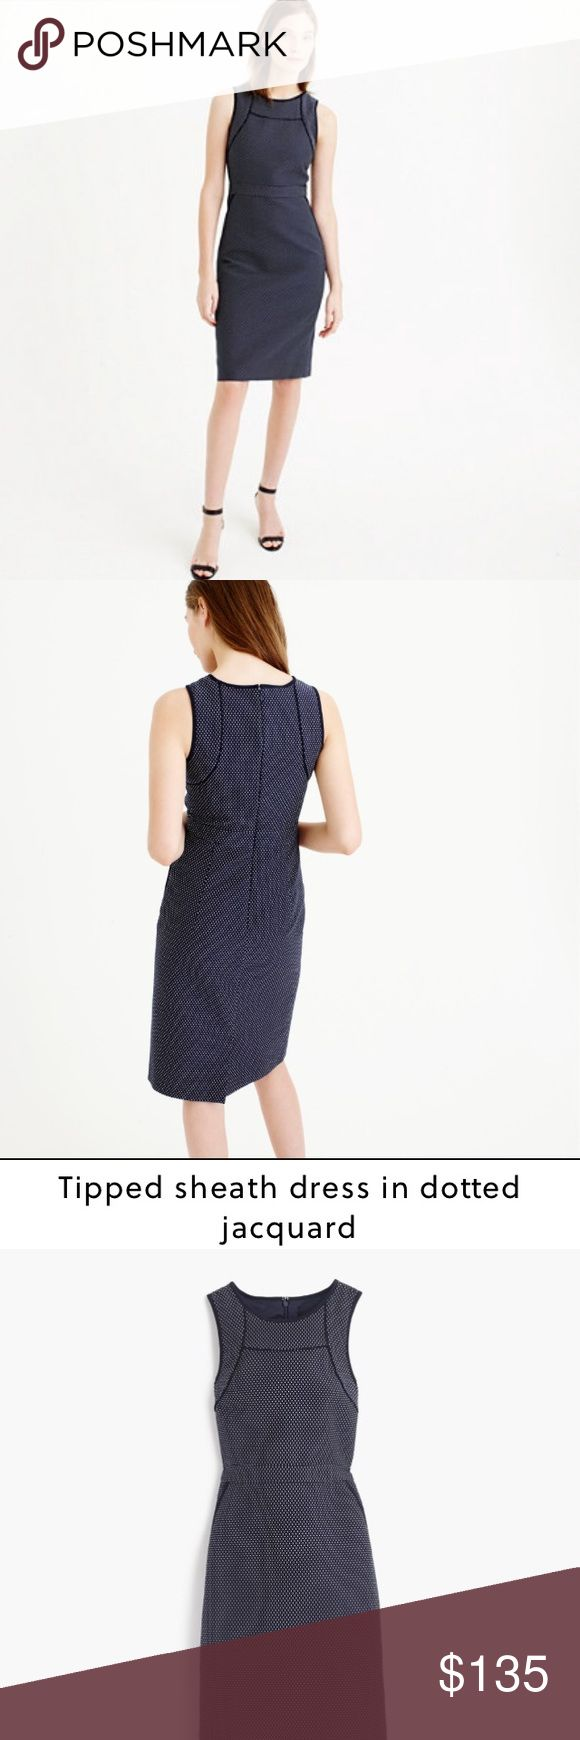 """NWOT✨ J. Crew ✨Tipped Sheath Dress Fitted silhouette. Falls above knee, 40"""" from high point of shoulder (based on size 6). Size 10 measurements will be added ASAP or upon request✨NWOT✨ We sourced this tiny dot jacquard print from a three-generation family-owned mill in Lyon, France, that produces over 2,000 original in-house designs each year. Also worth noting? The classic, ultra-flattering sheath dress silhouette has pockets.  Cotton/poly. Back zip. Dry clean. Import. Item E8665. J. Crew…"""